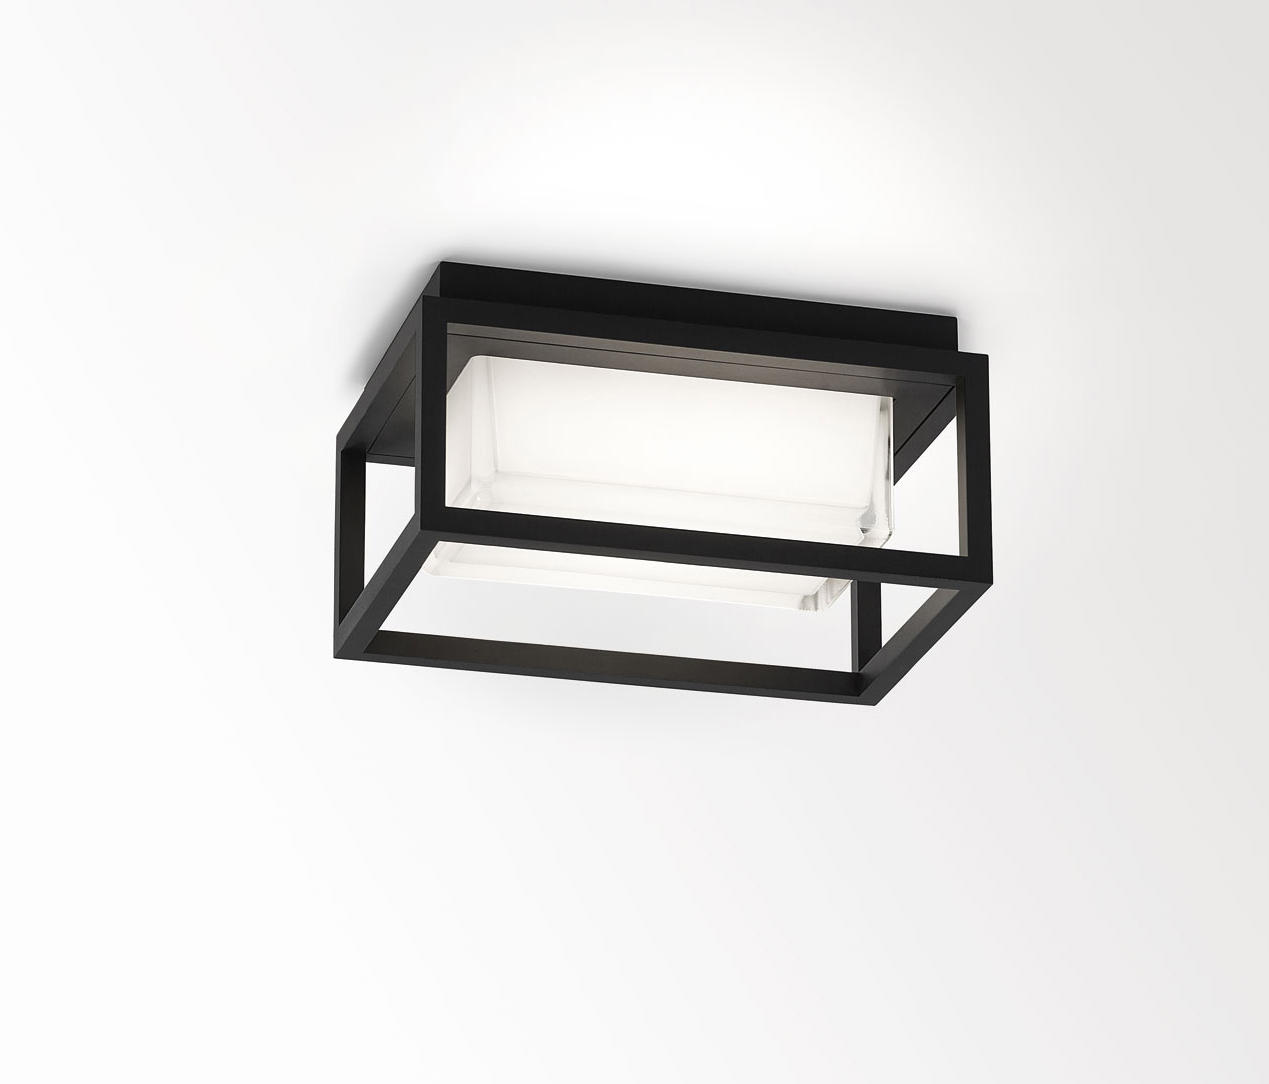 montur s led allgemeinbeleuchtung von delta light. Black Bedroom Furniture Sets. Home Design Ideas